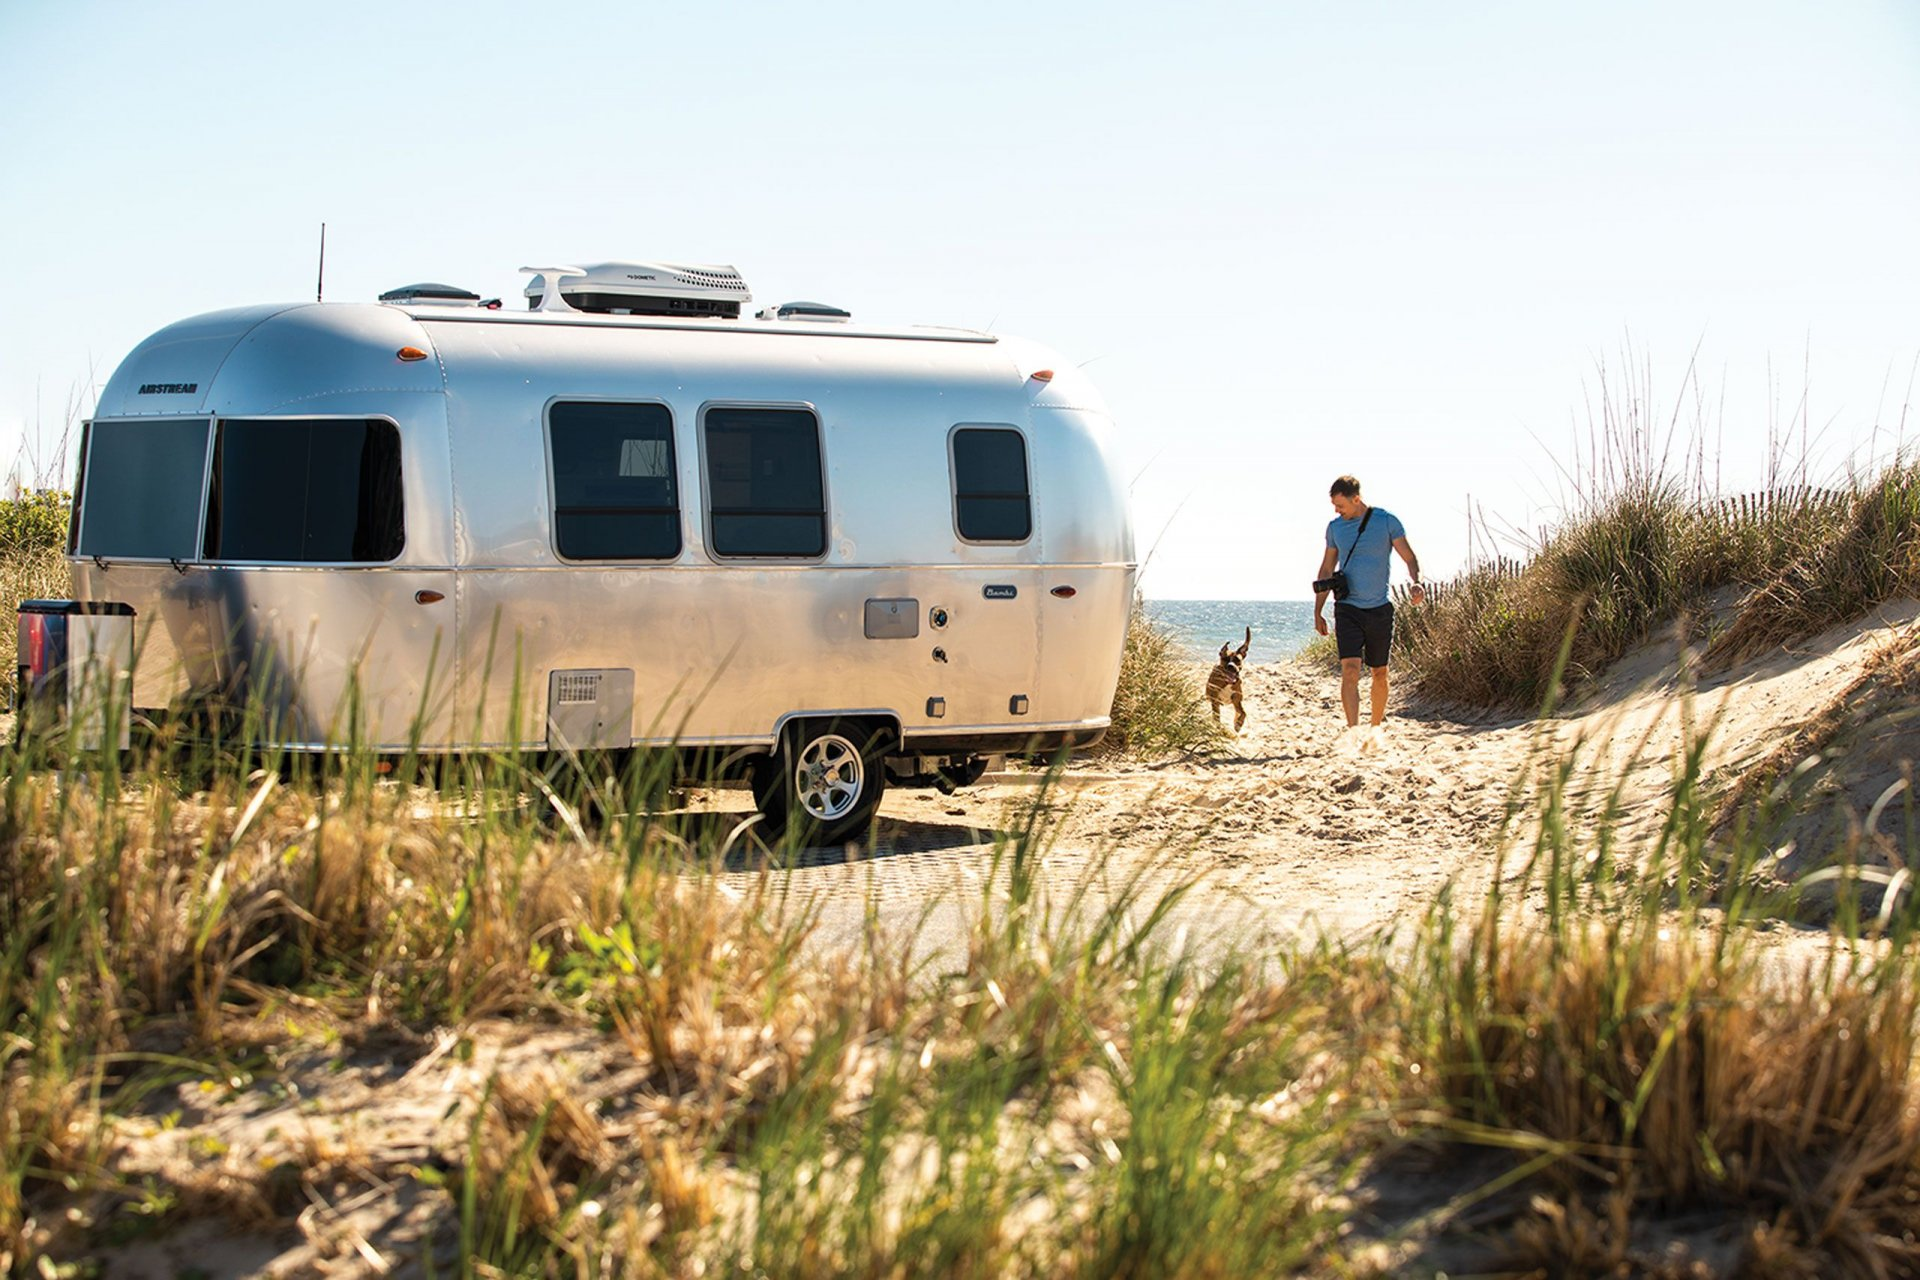 The Airstreams have landed Slide Image